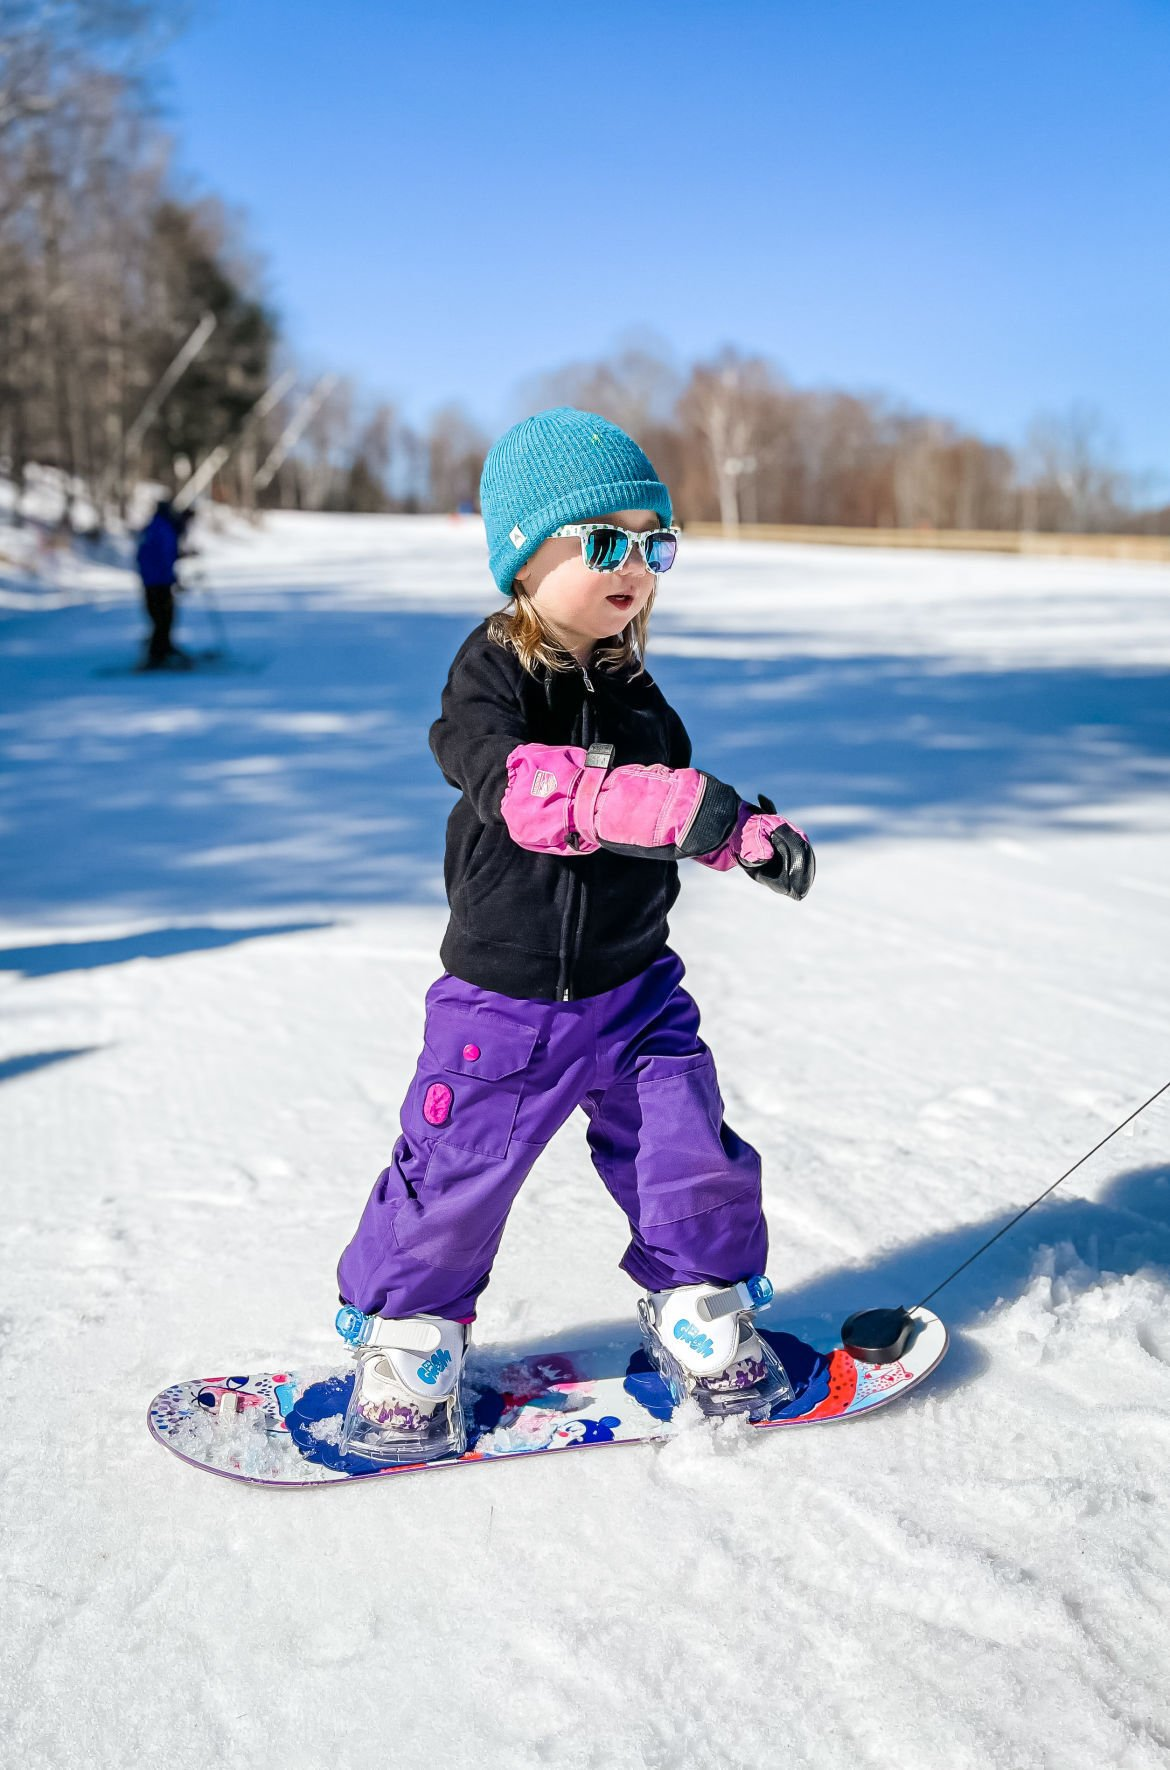 Nora on her snowboard